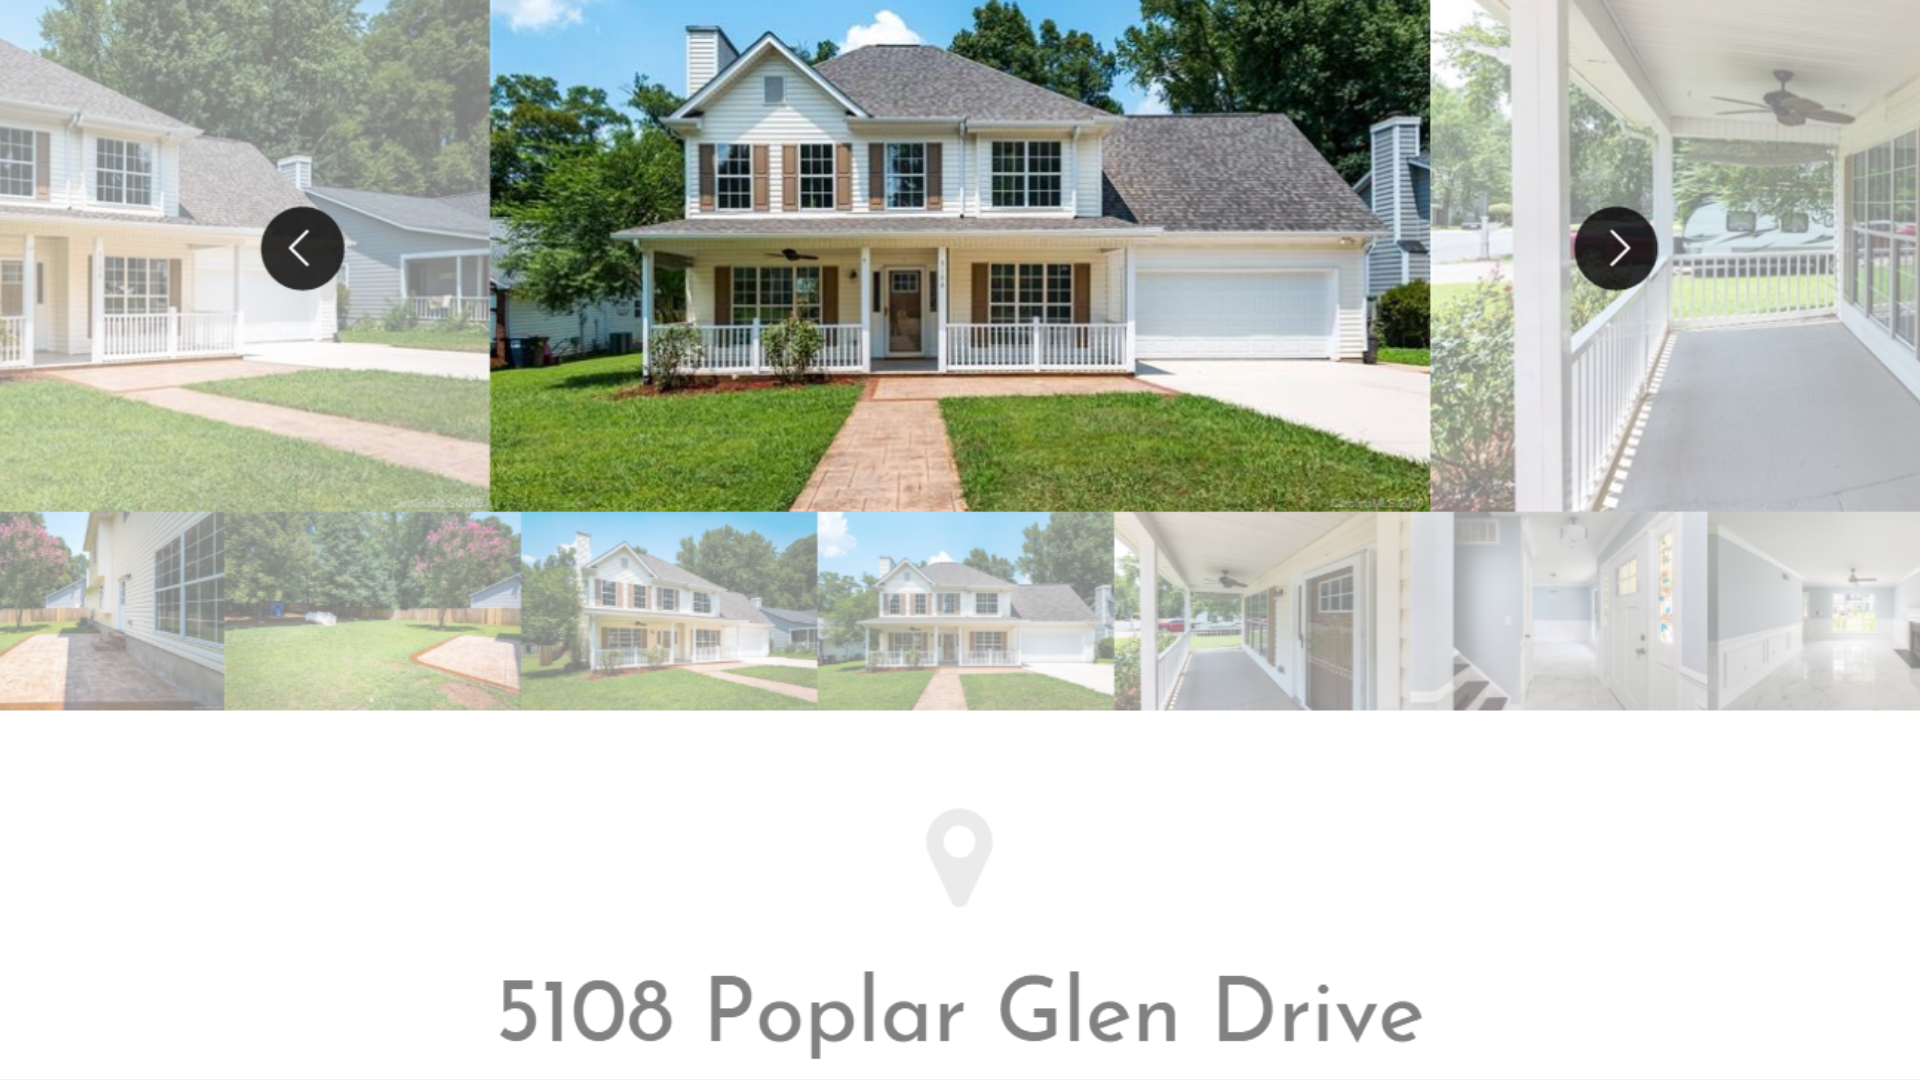 5108_Poplar_Glen_Dr,_Matthews,_NC_28104 Featured